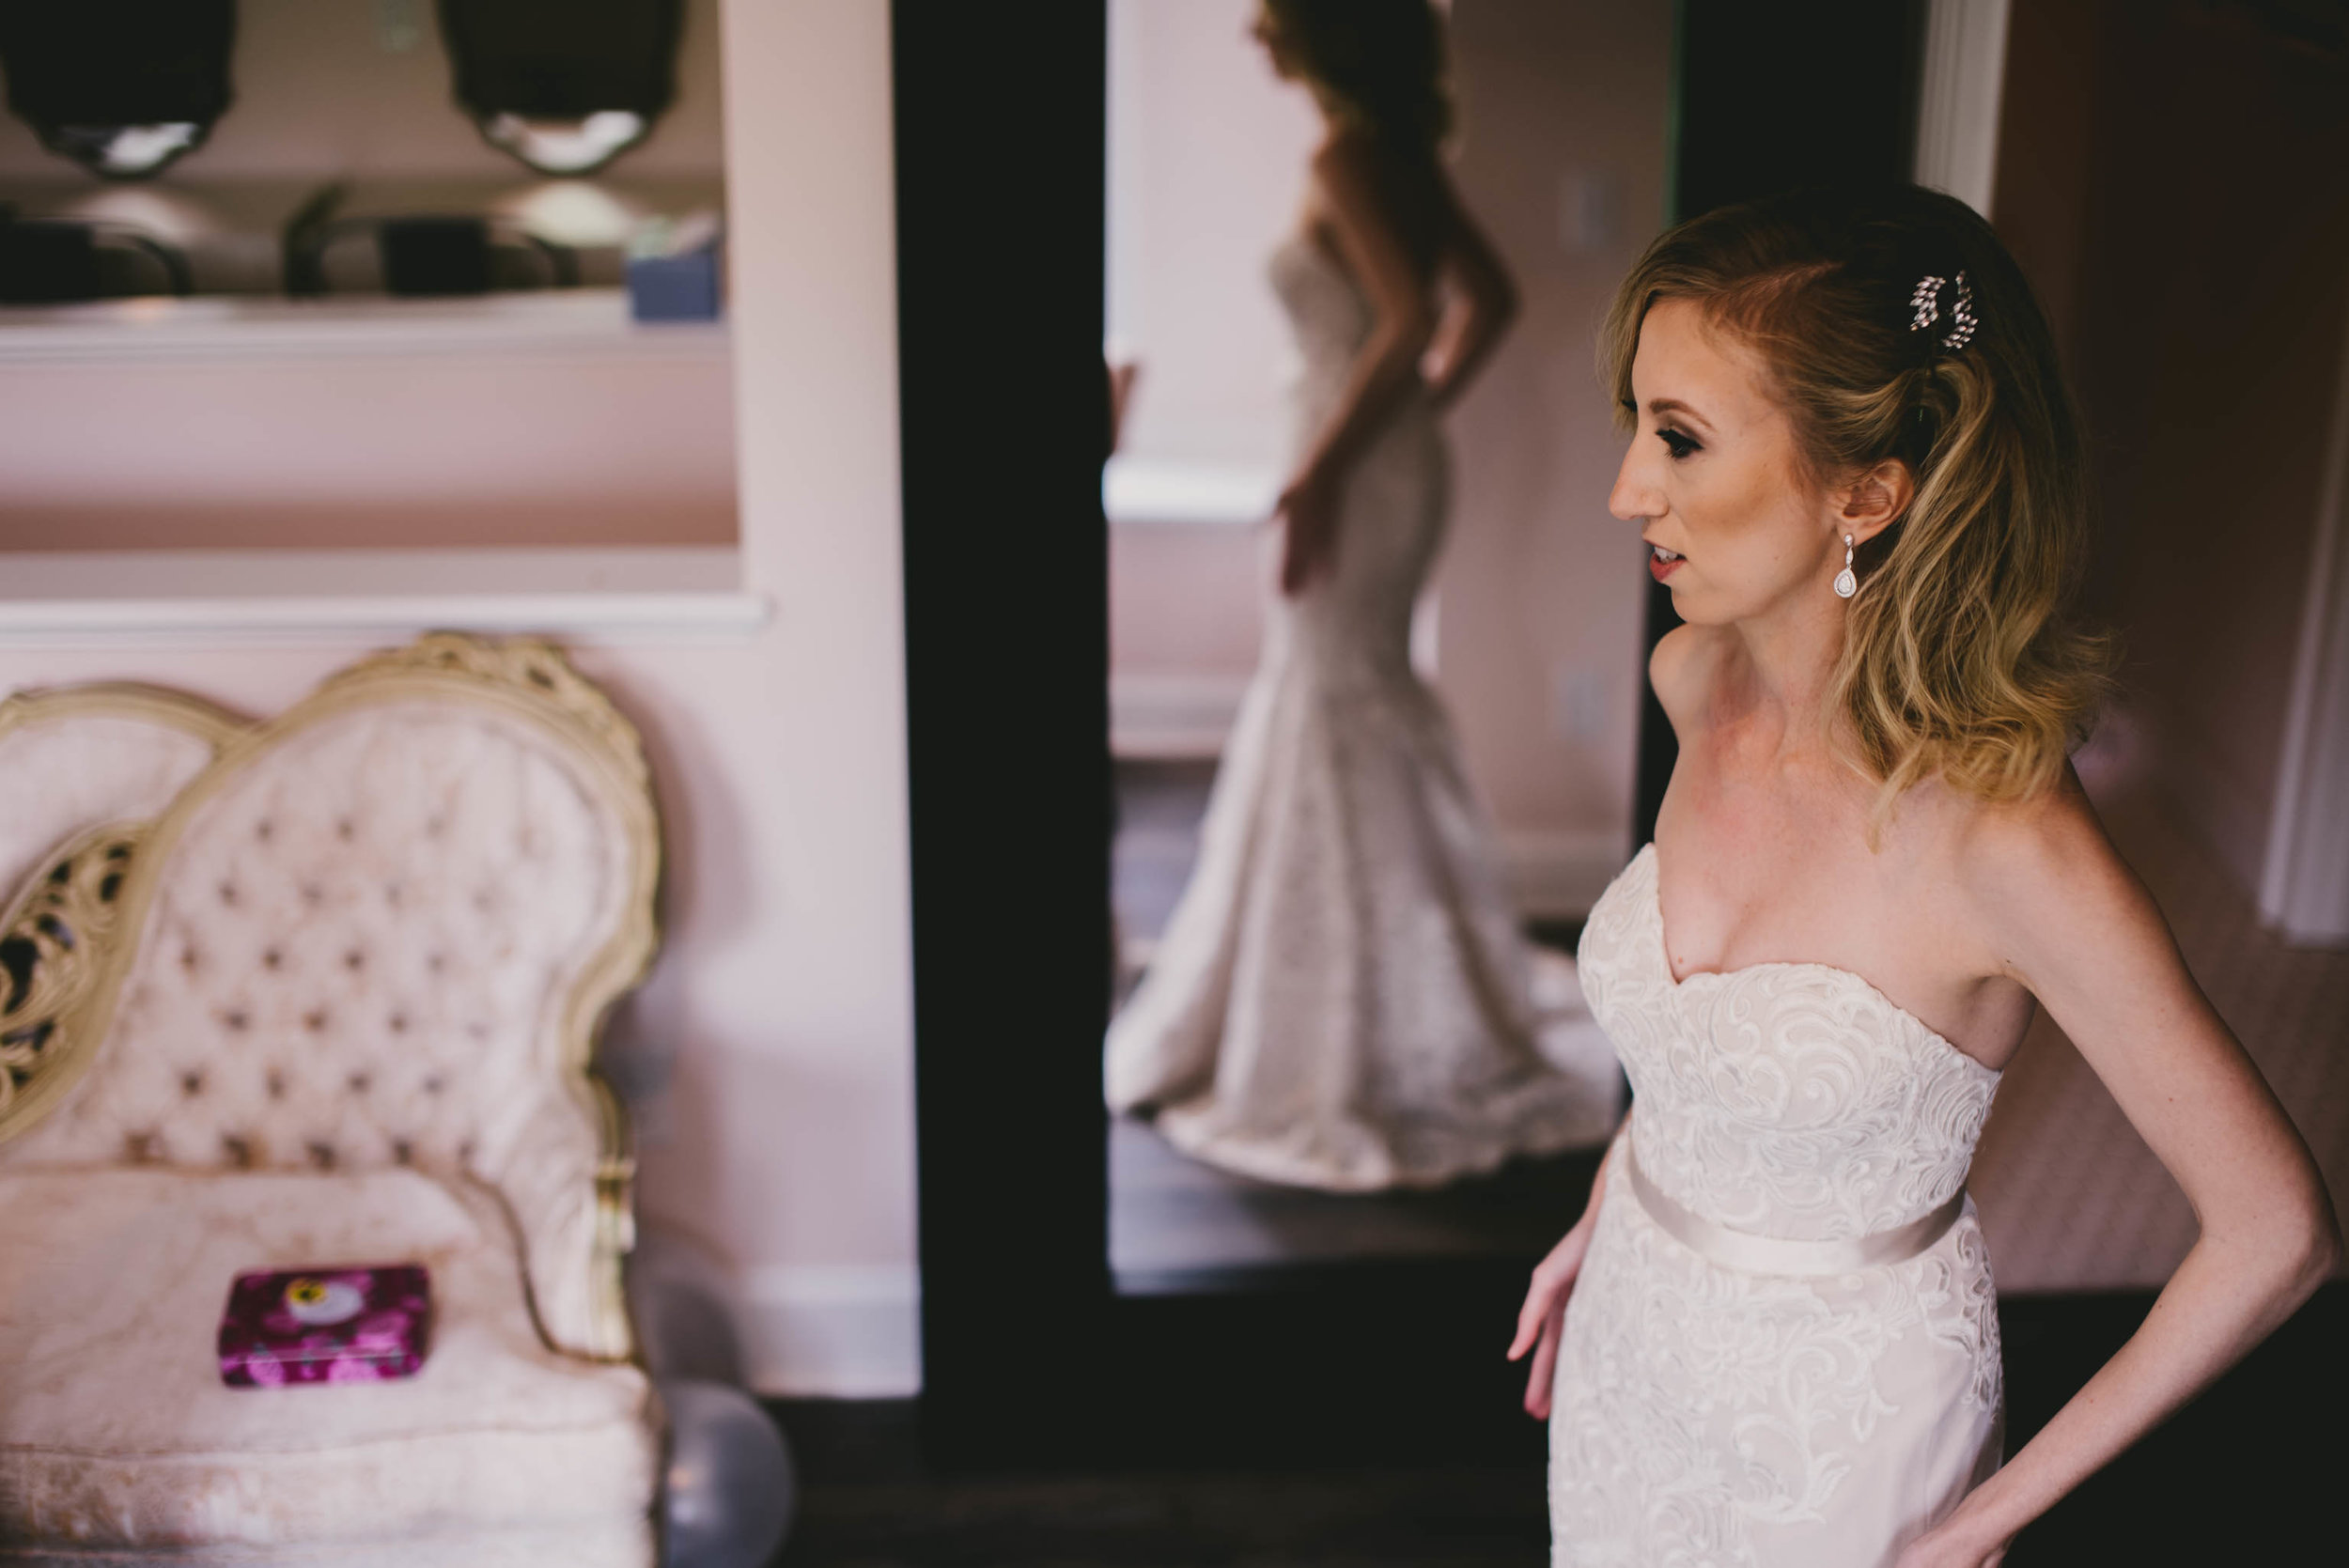 bride and her reflection in the mirror as she is doing final touches before the wedding